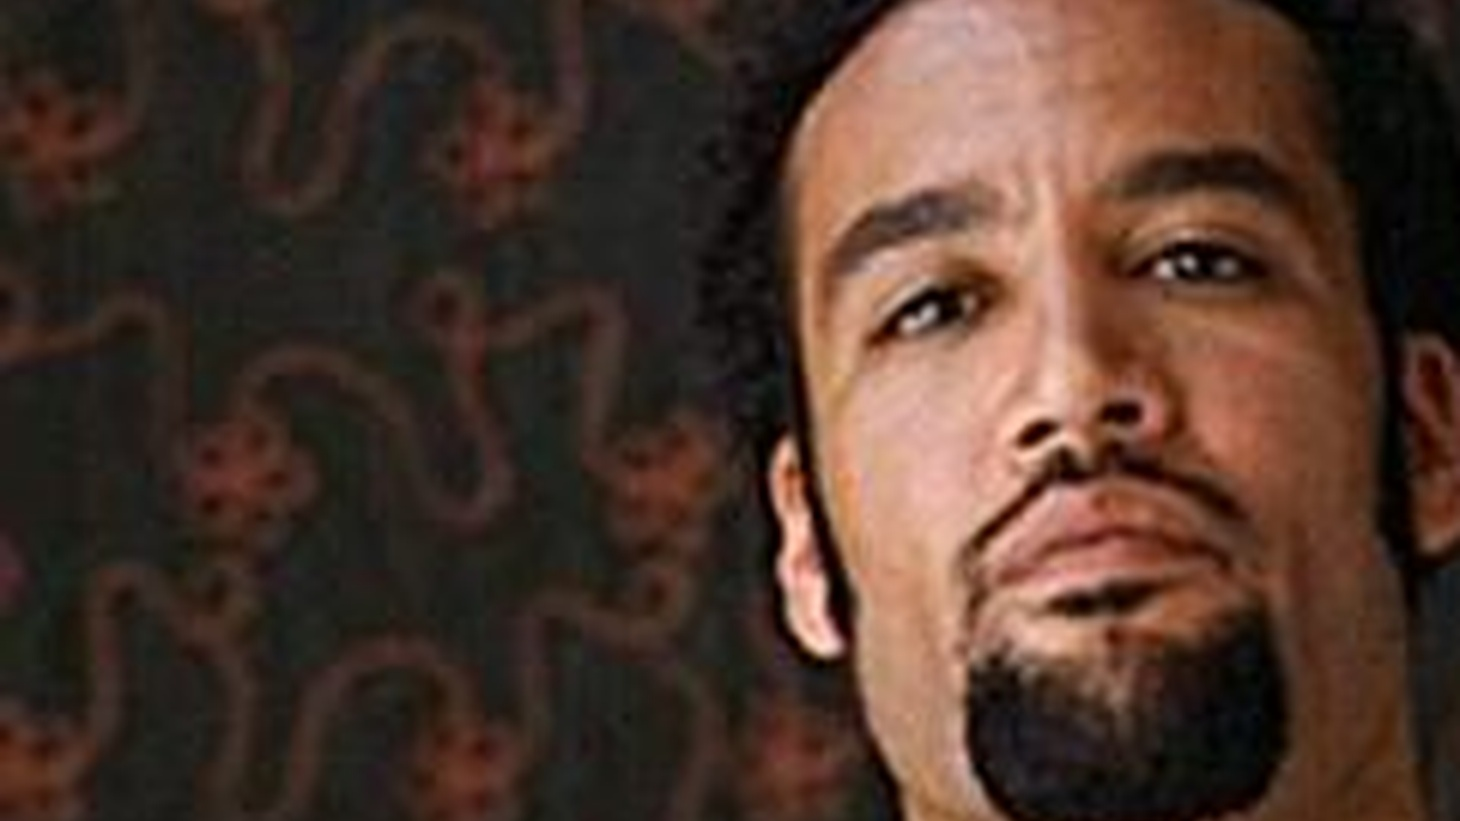 Ben Harper brings in his record bag to share songs that inspire him as guest deejay on Morning Becomes Eclectic at 11:15am.